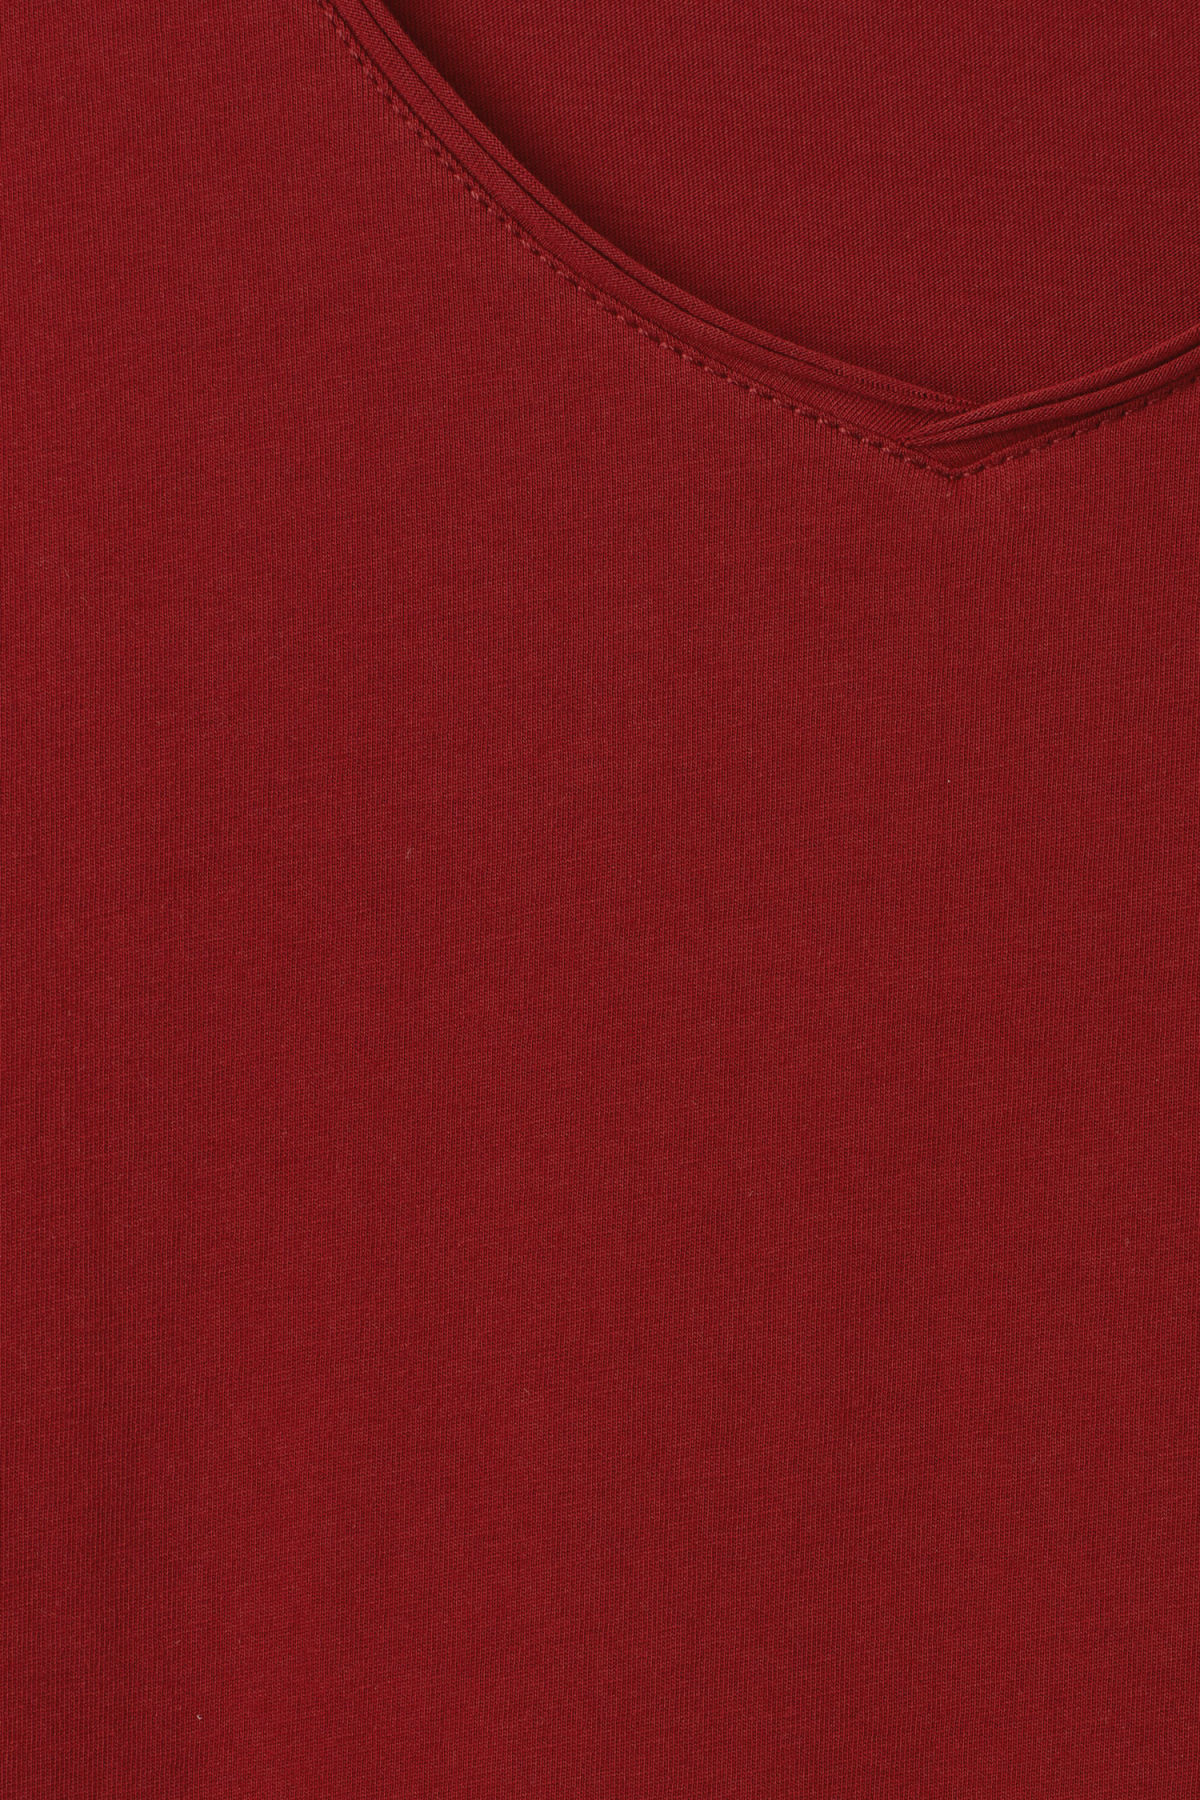 Detailed image of Weekday dark v-neck t-shirt in red